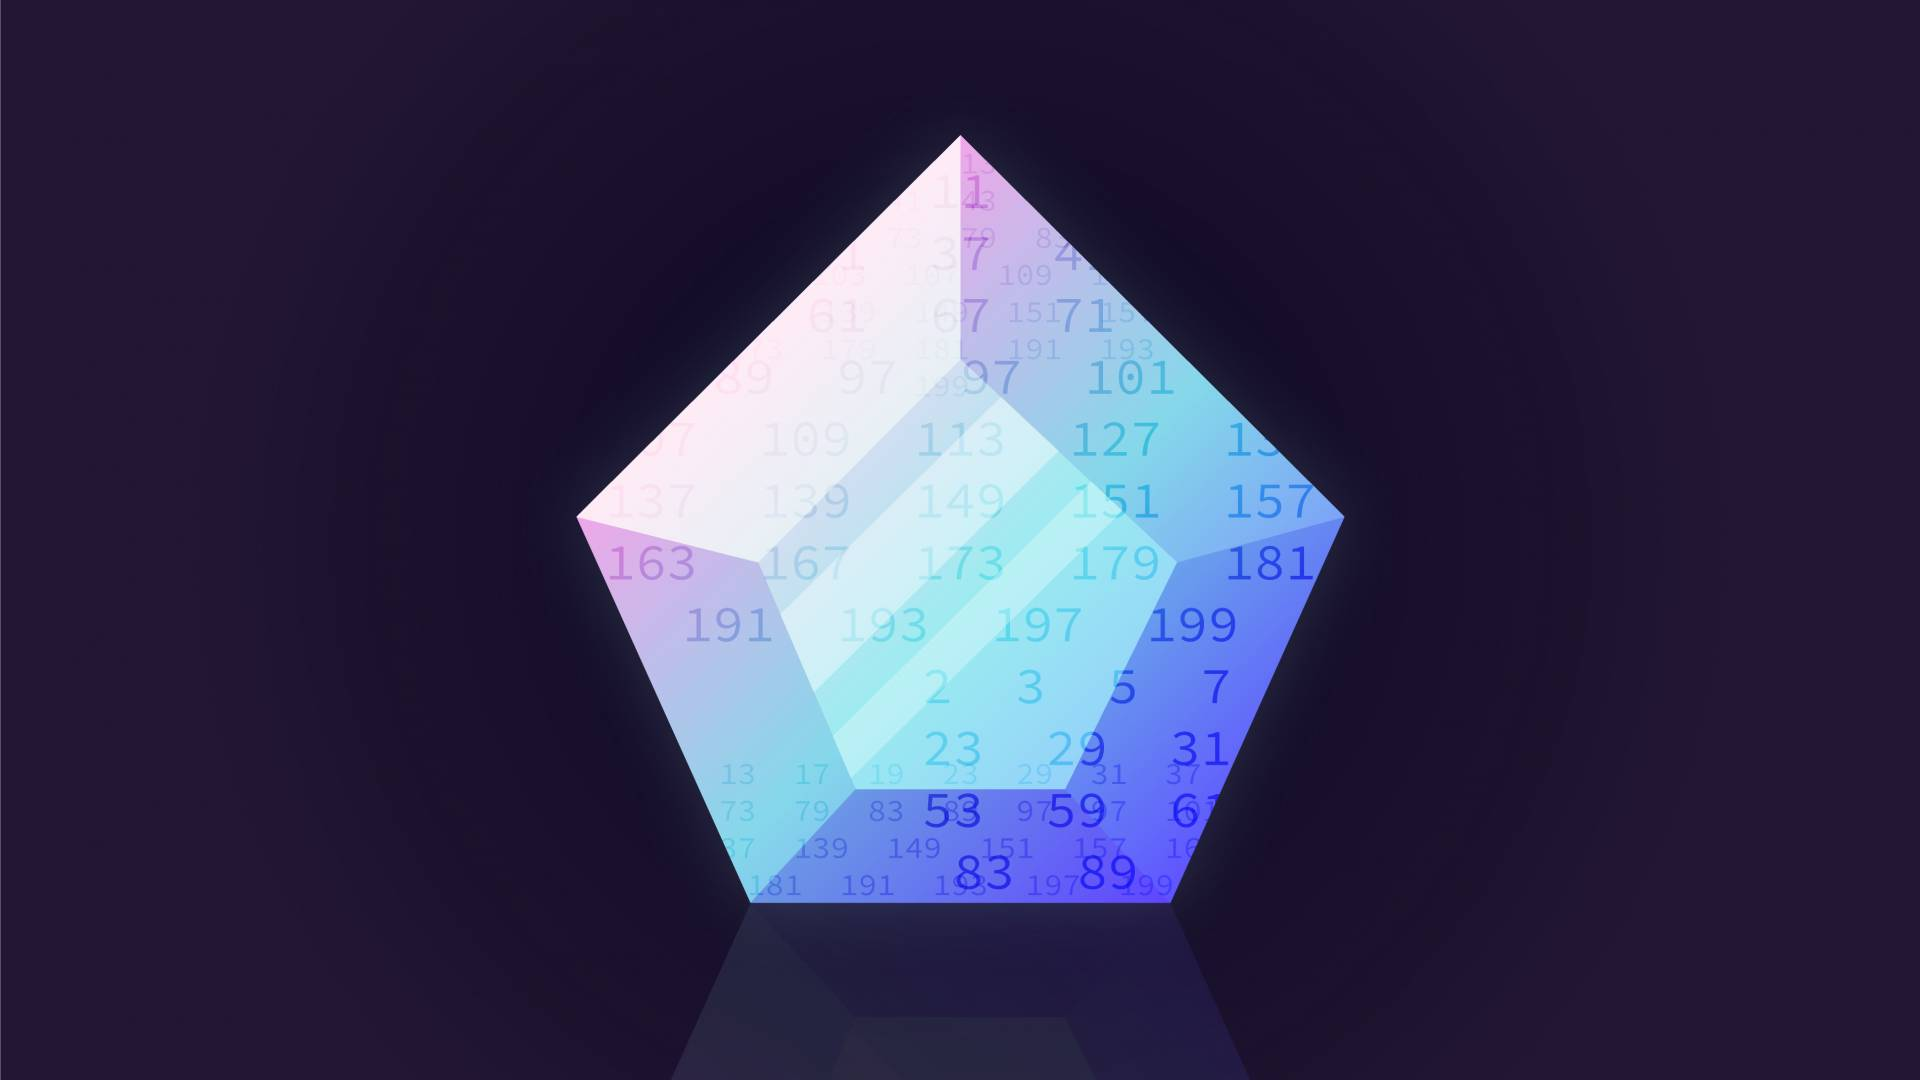 Illustration of a crystal overlaid with prime numbers